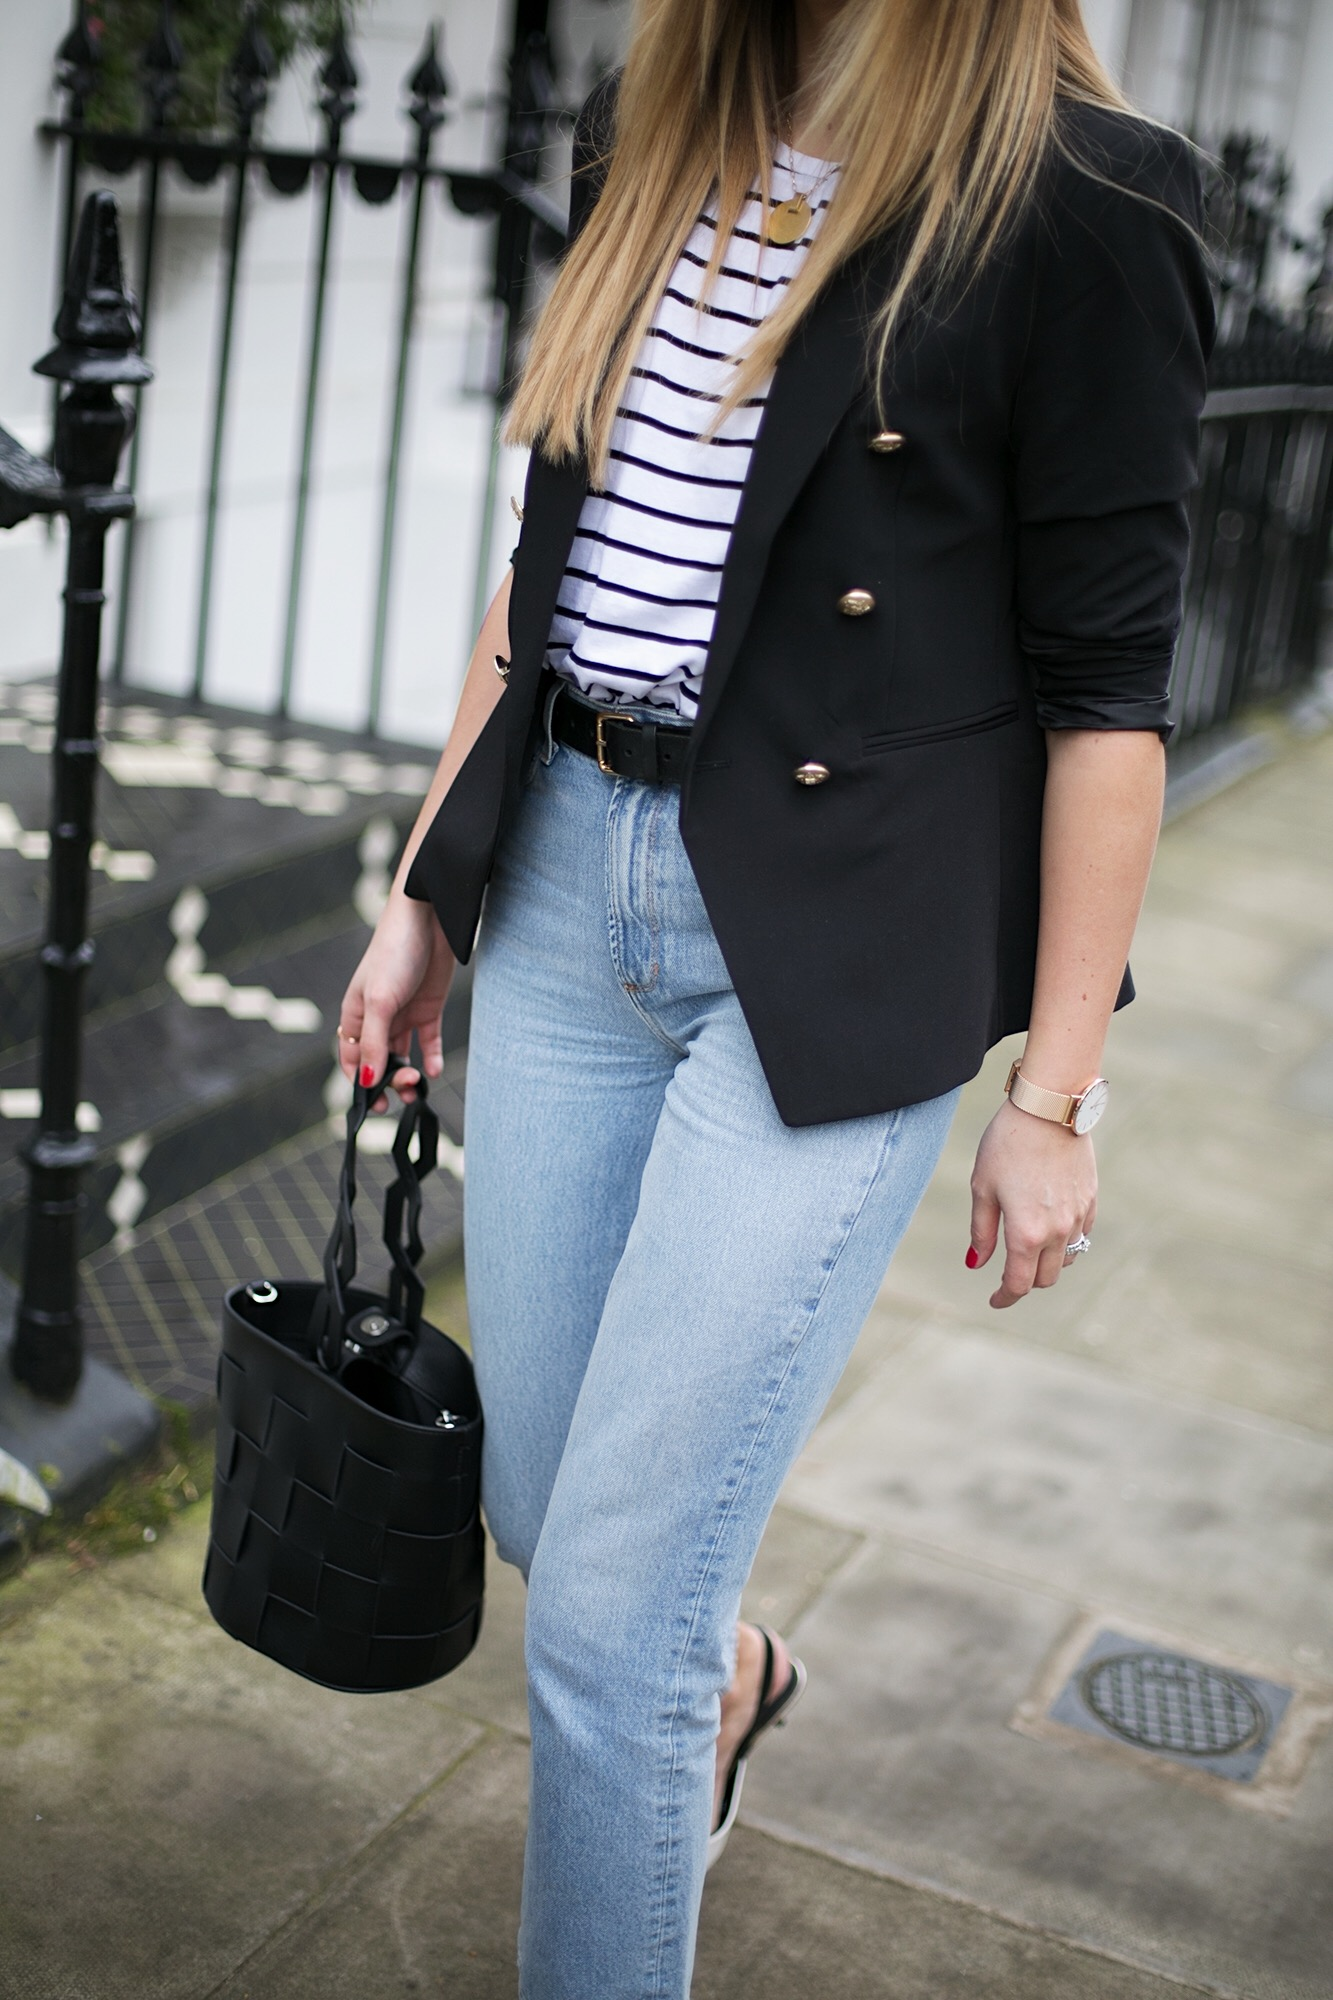 Stripe t-shirt, black military blazer, light wash high waisted jeans, black belt, round rayon sunglasses, black bucket bag, spring outfit